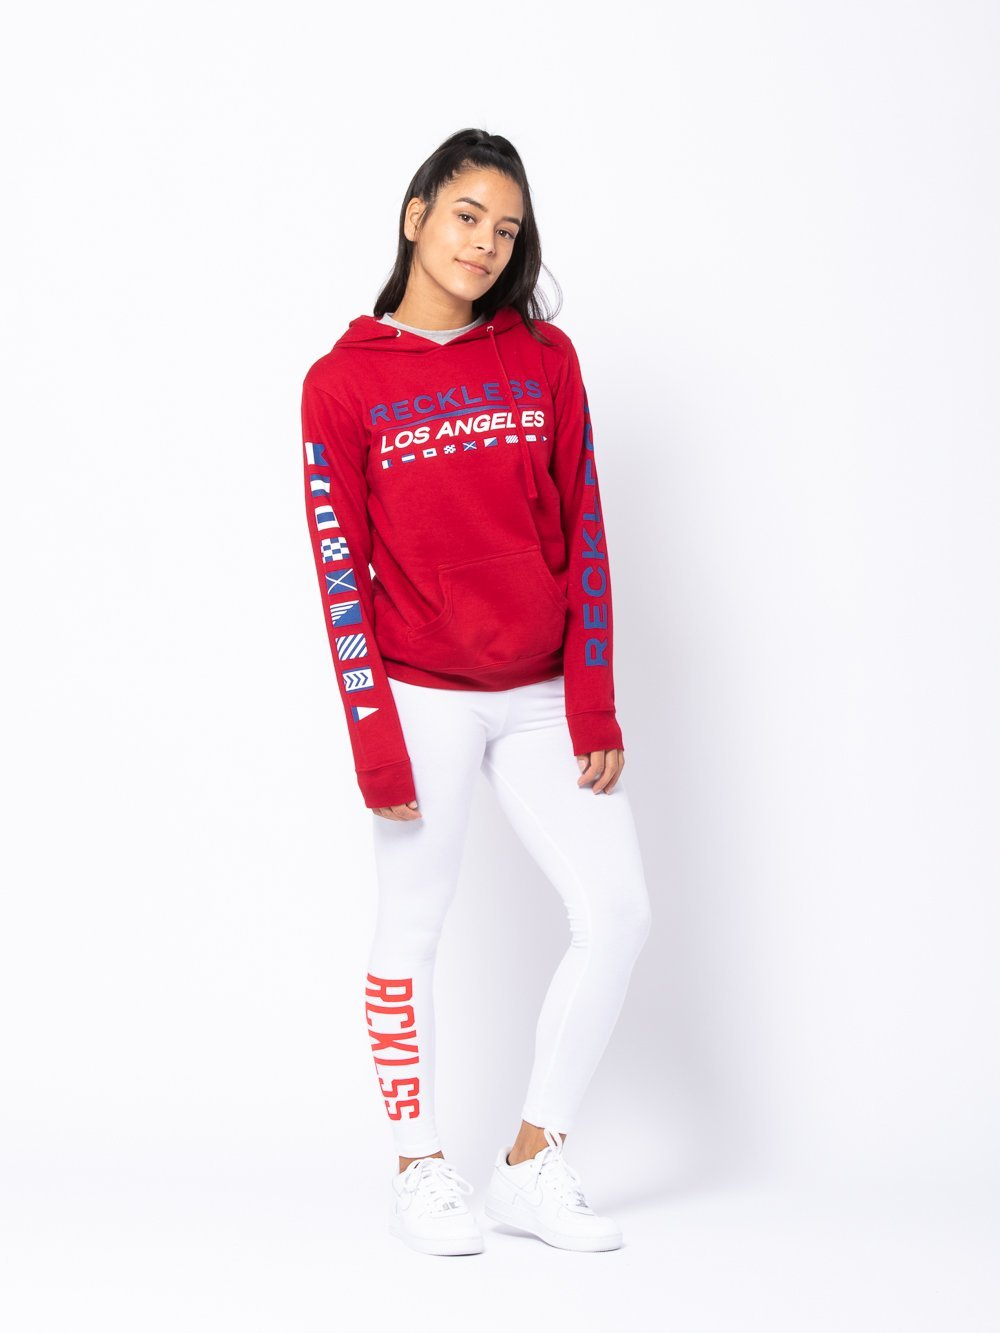 Reckless Girls Womens - Bundles Independence Bundle - Red/White